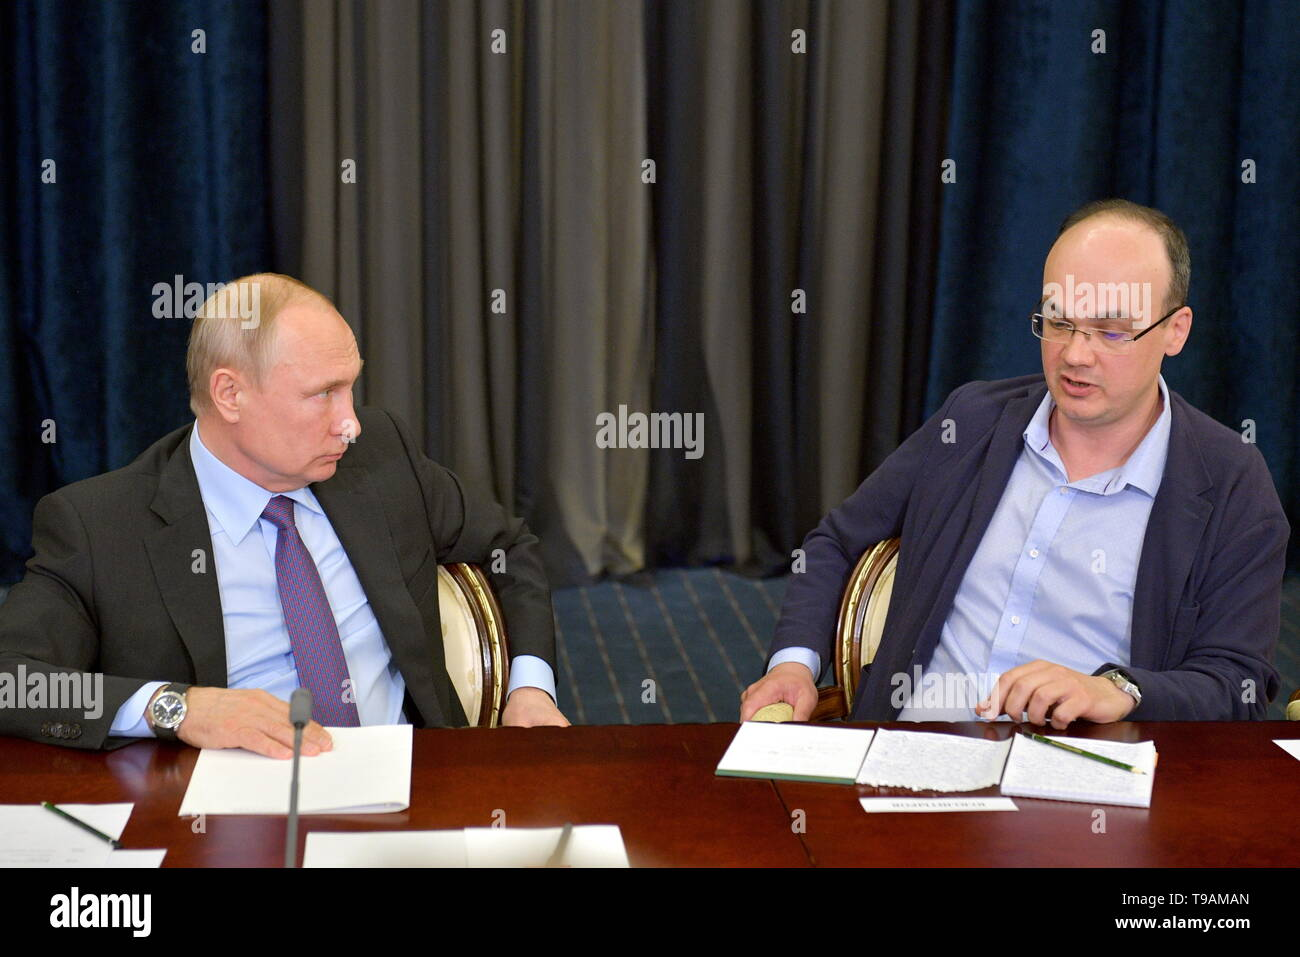 Moscow, Russia. 17th May, 2019. SOCHI, RUSSIA - MAY 17, 2019: Russia's President Vladimir Putin (L) and Aarhus University (Denmark) professor Yuri Shtyrov during a meeting with the winners of 'megagrants' for scientific research. Alexei Druzhinin/Russian Presidential Press and Information Office/TASS Credit: ITAR-TASS News Agency/Alamy Live News - Stock Image